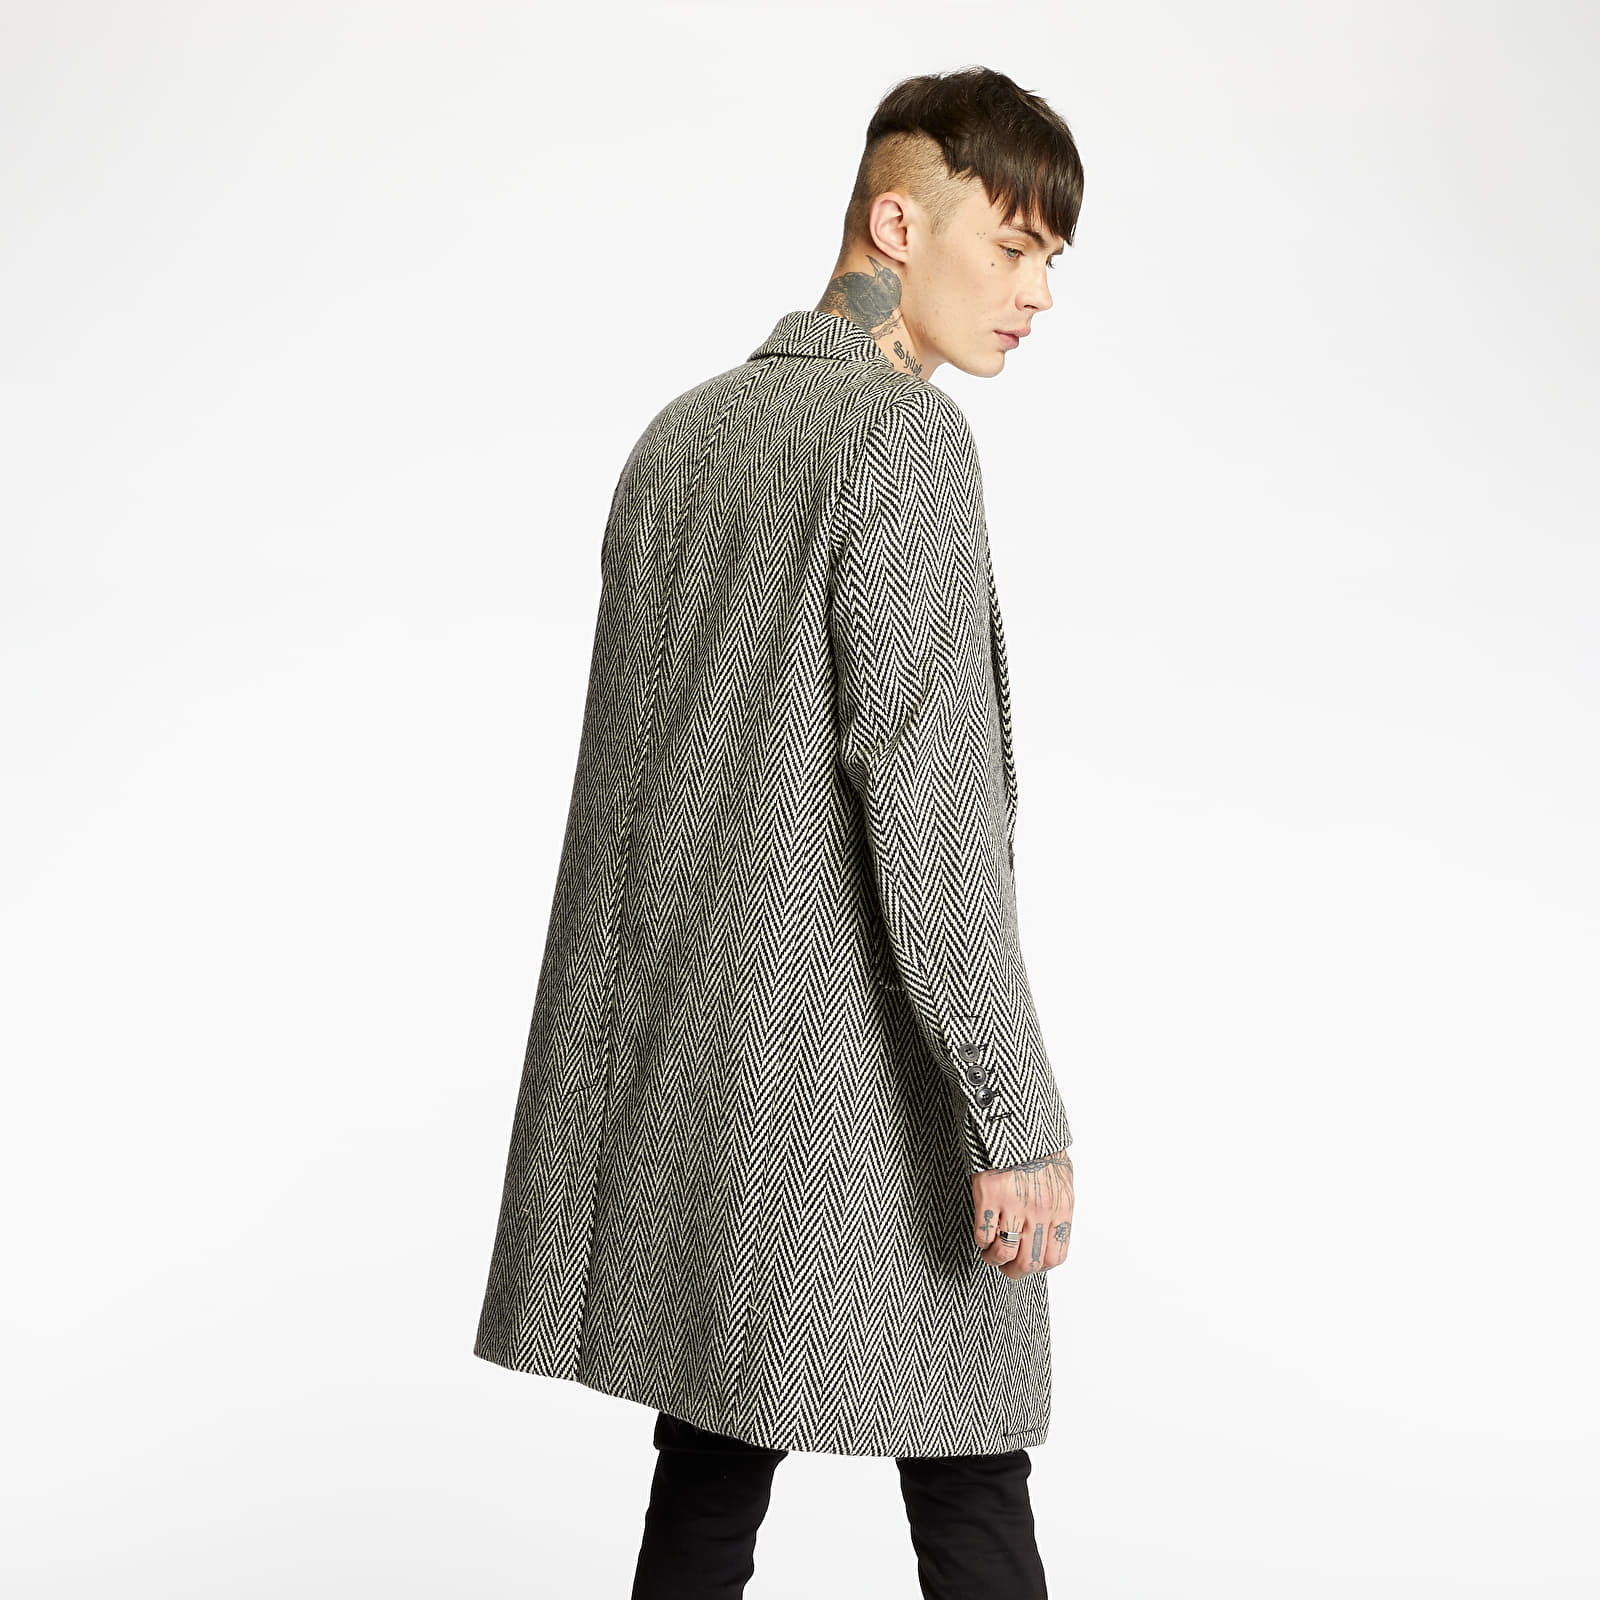 Coats AMI Alexandre Mattiussi Coat White/ Black